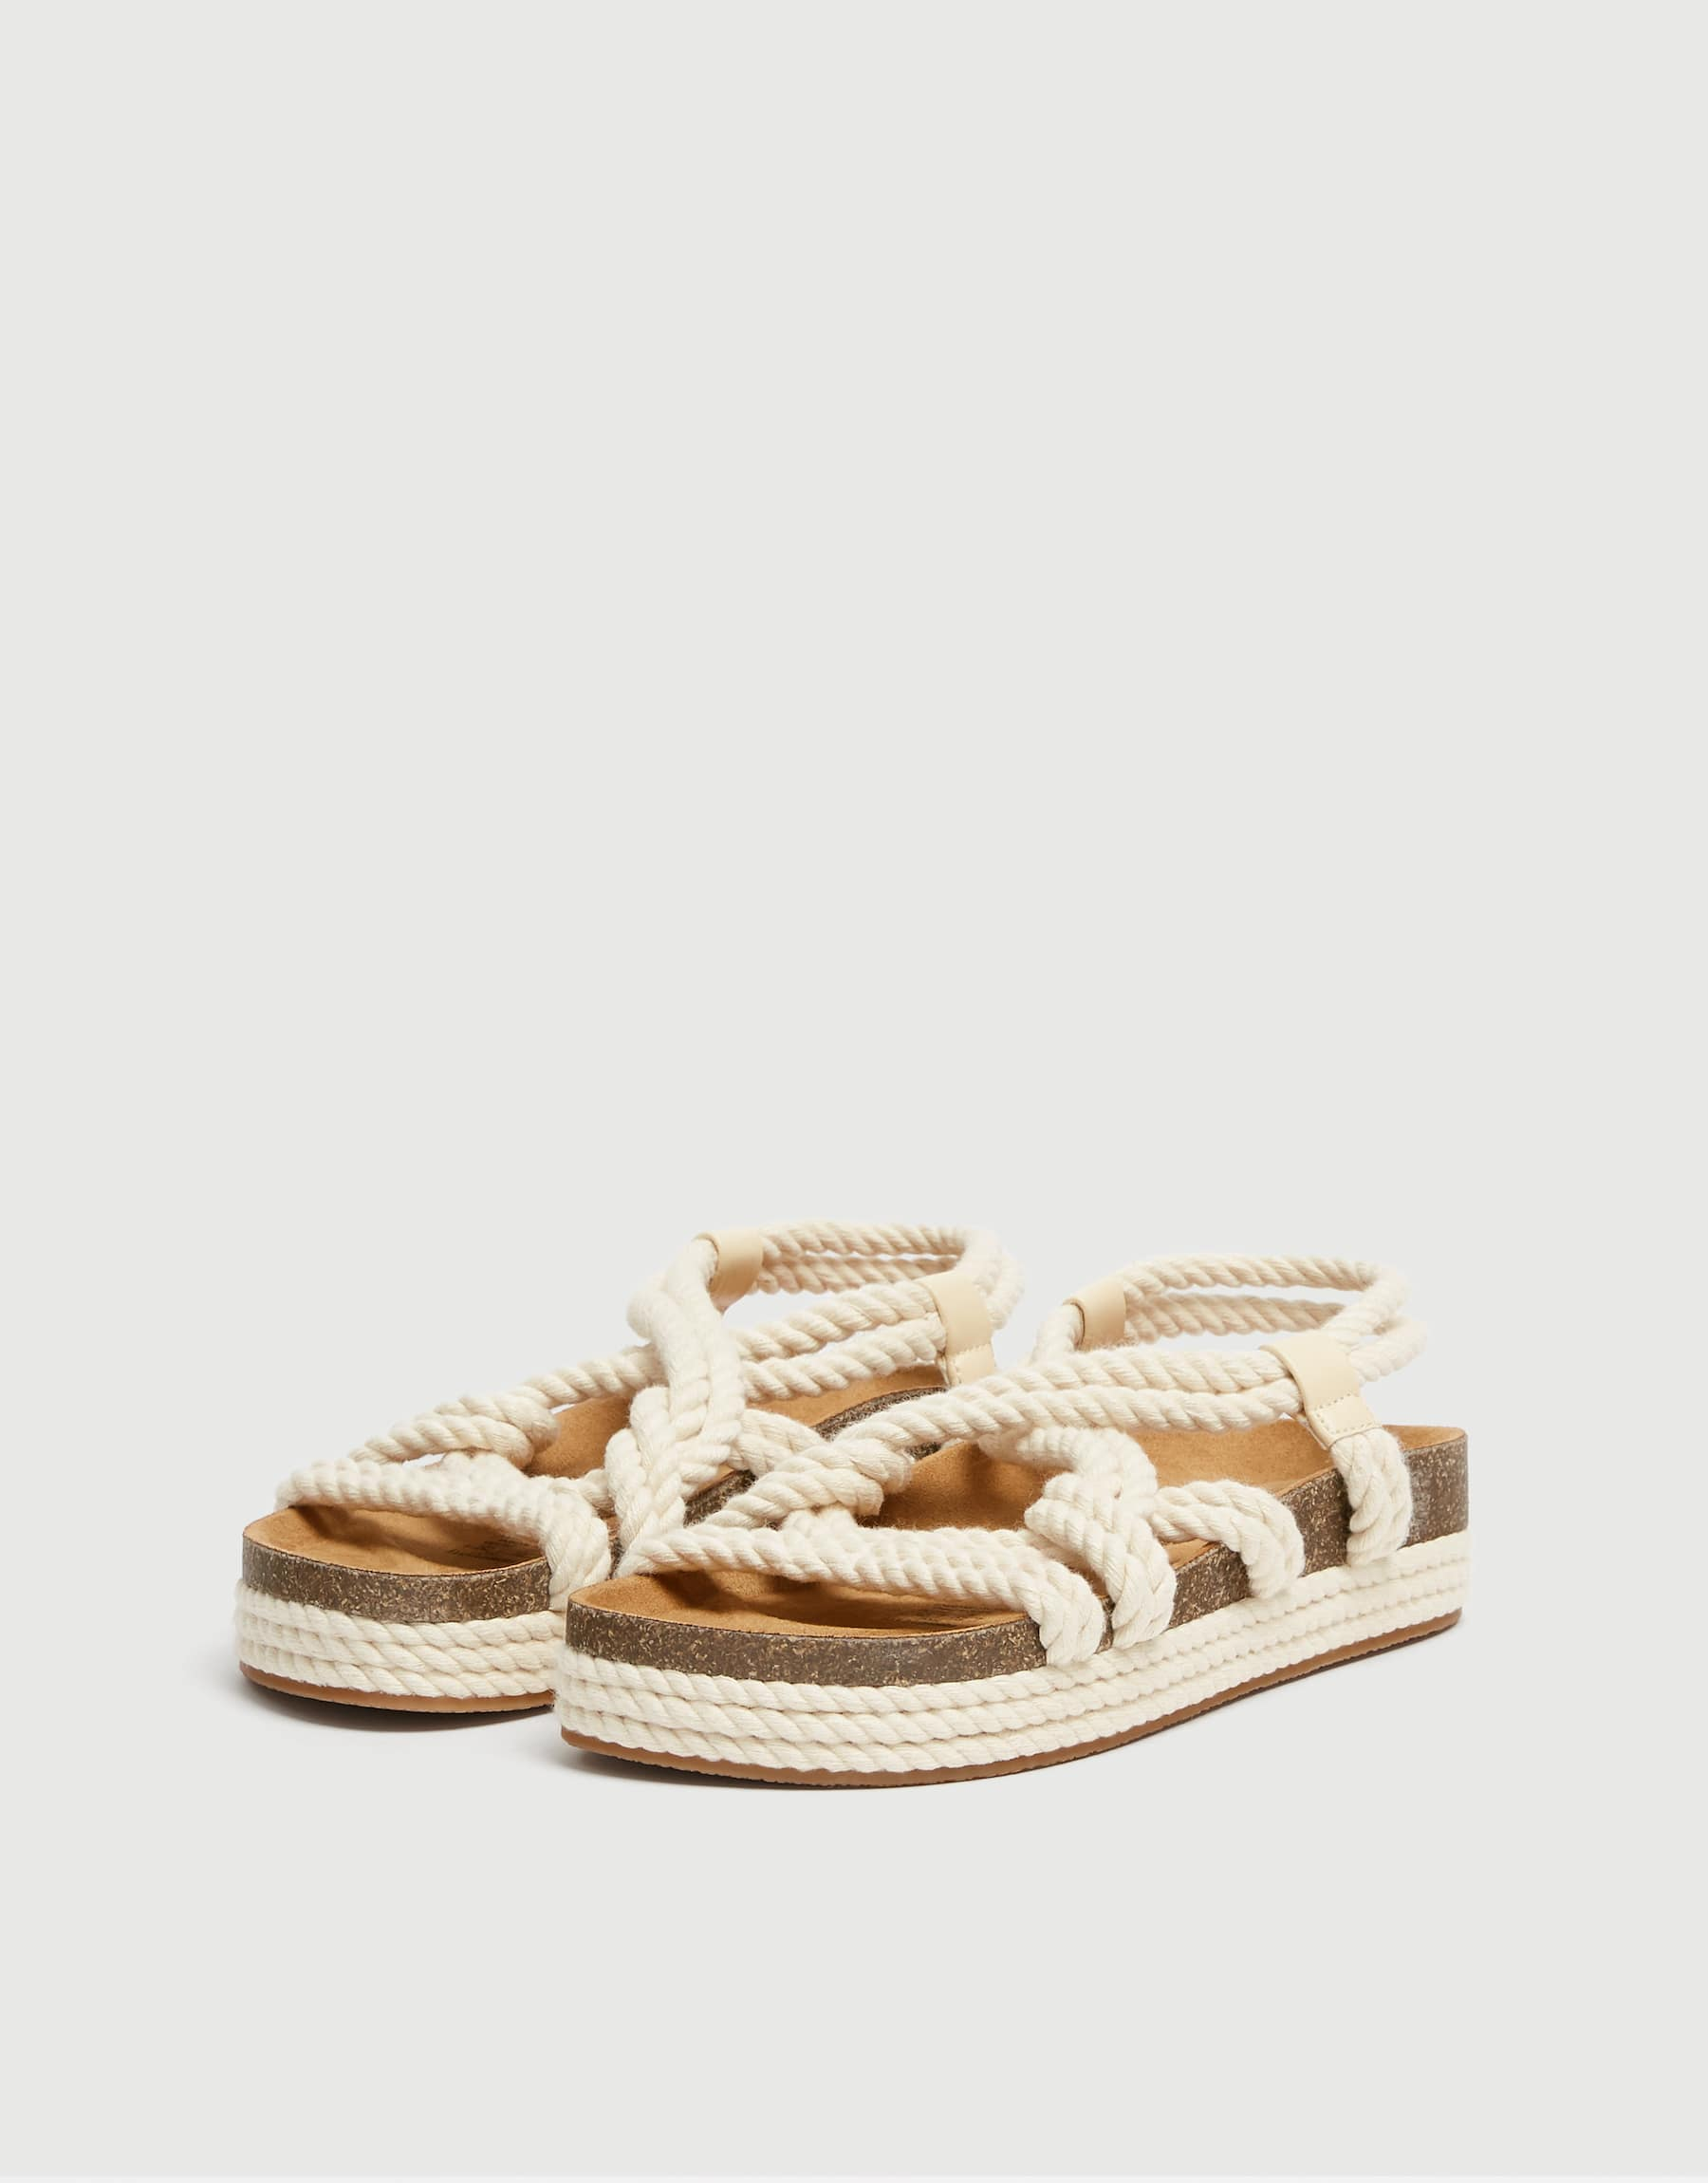 Sadie Sink By Pull&Bear Natural Sandals, $69.90